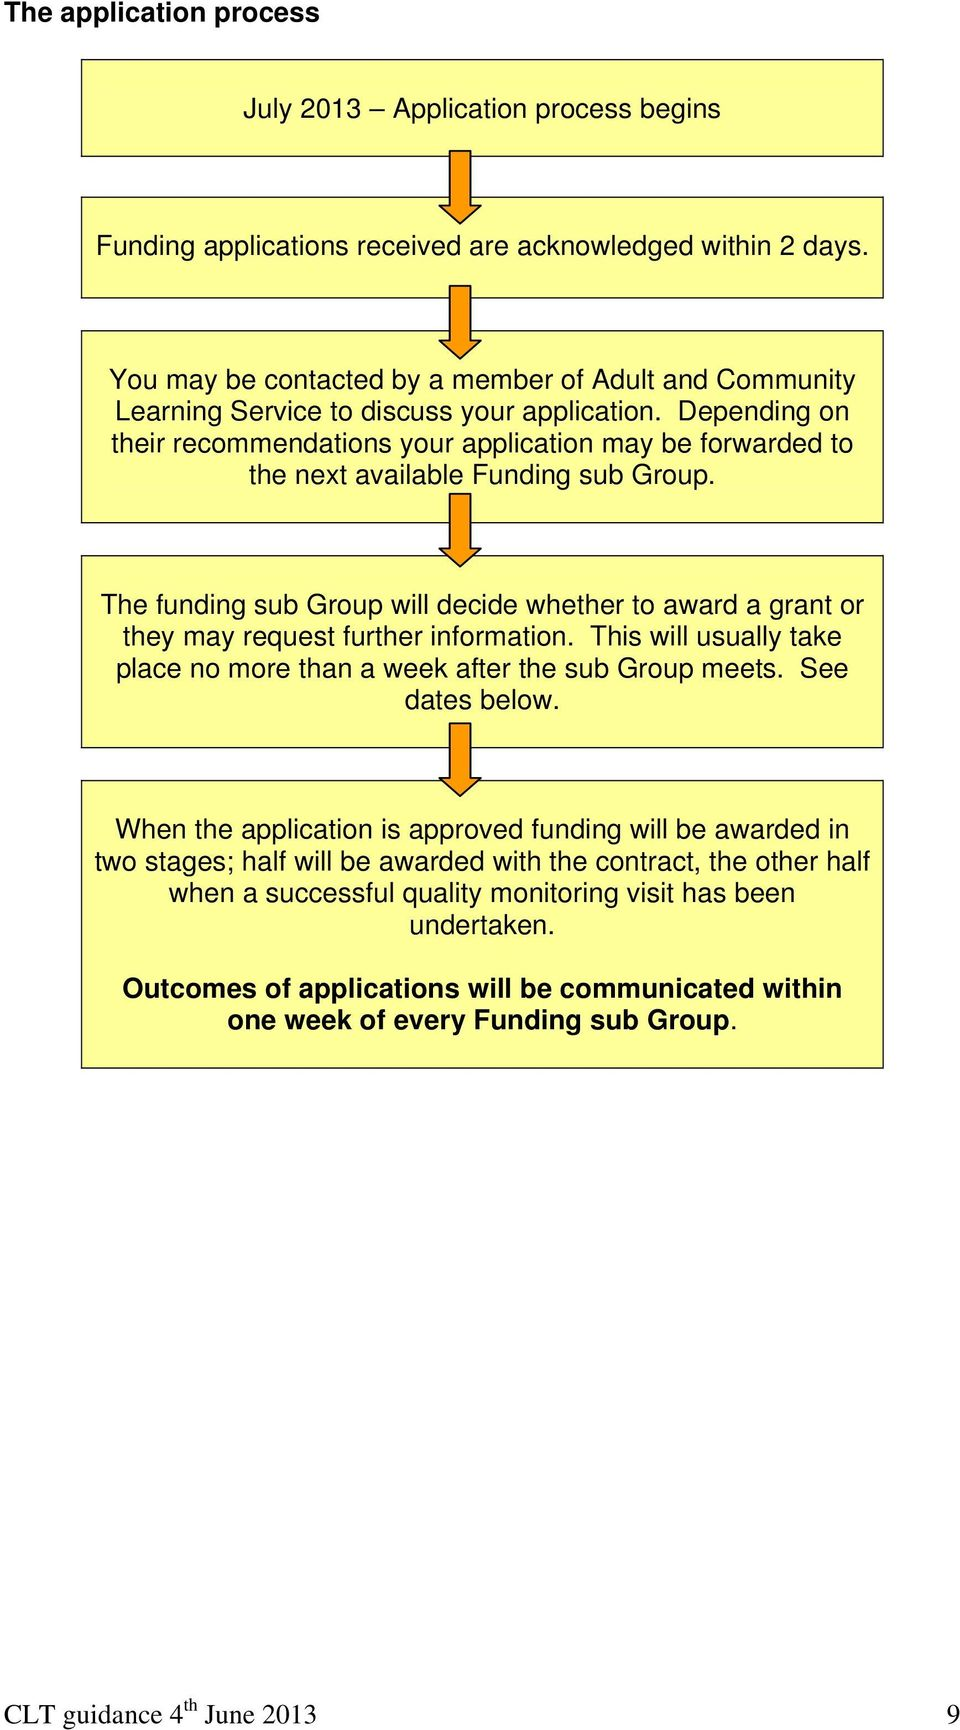 Depending on their recommendations your application may be forwarded to the next available Funding sub Group.